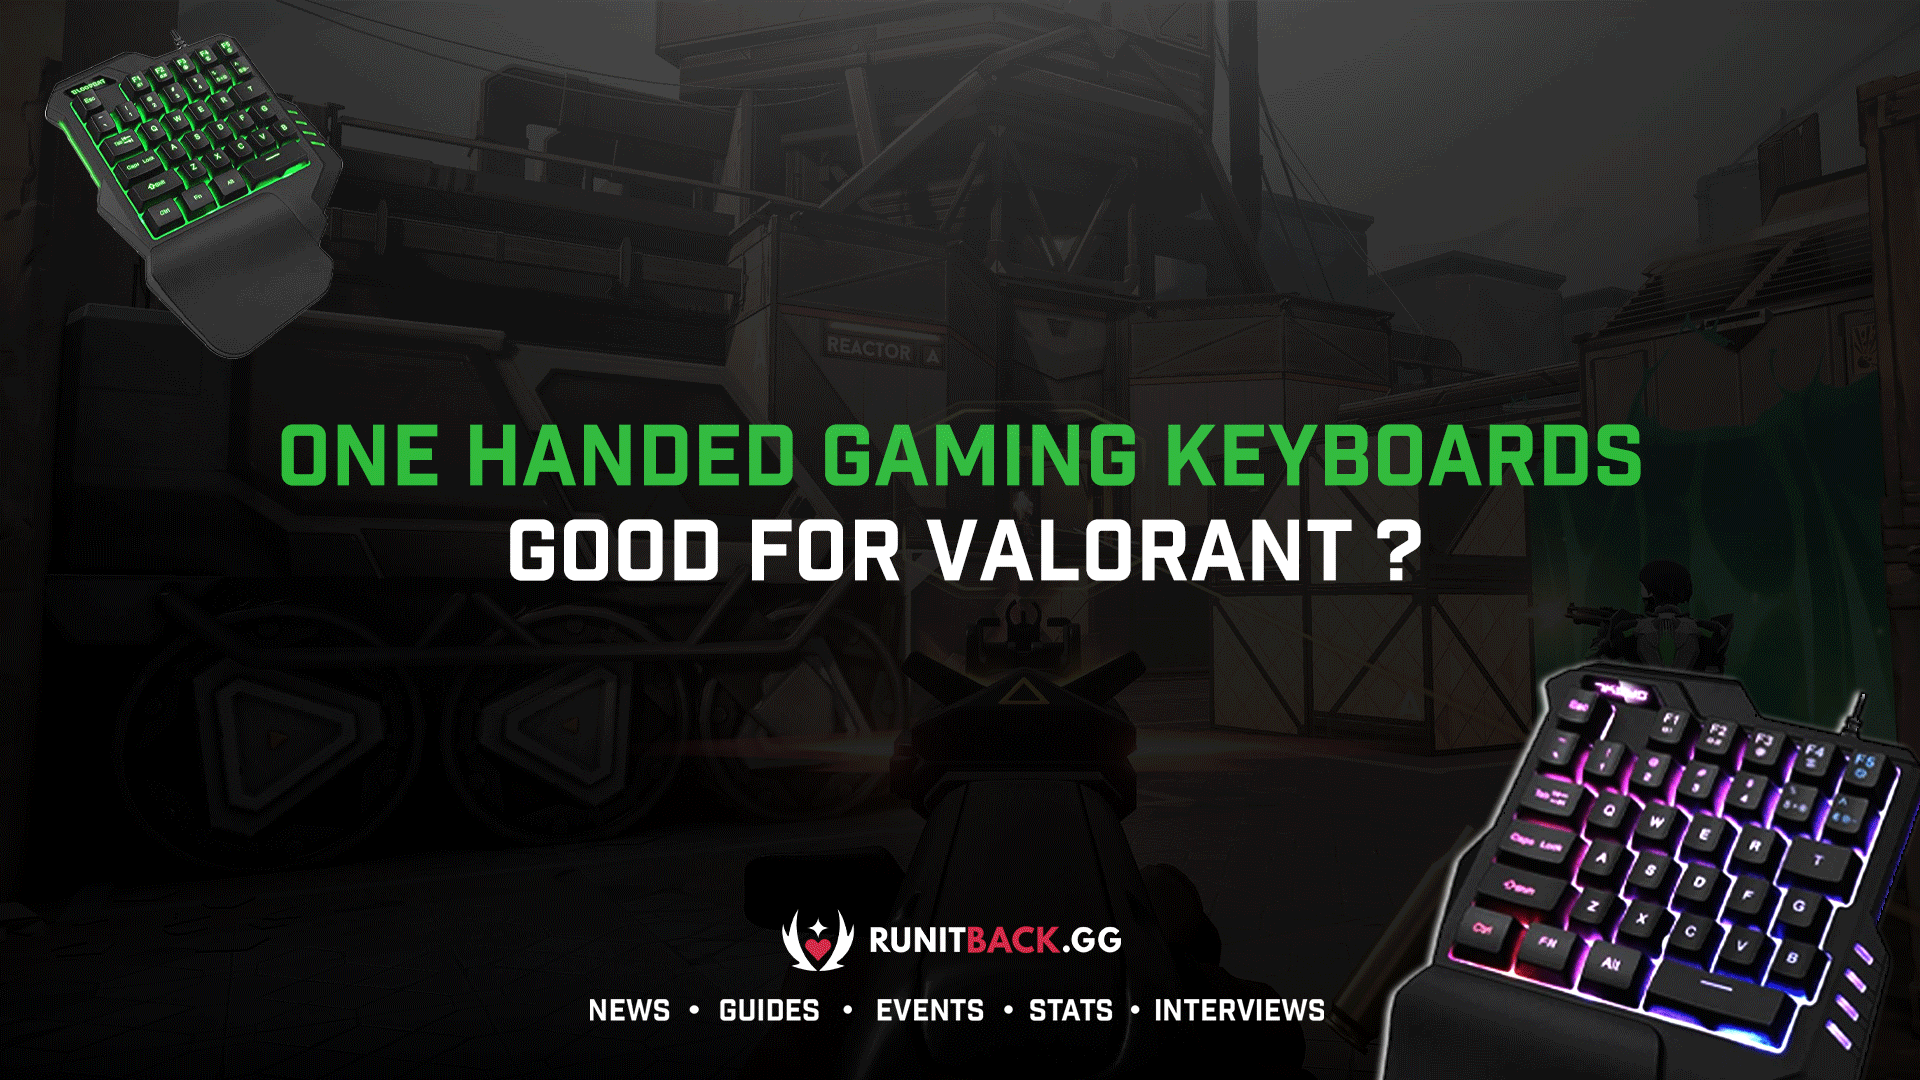 Are One Handed Gaming Keyboards Good for Valorant?